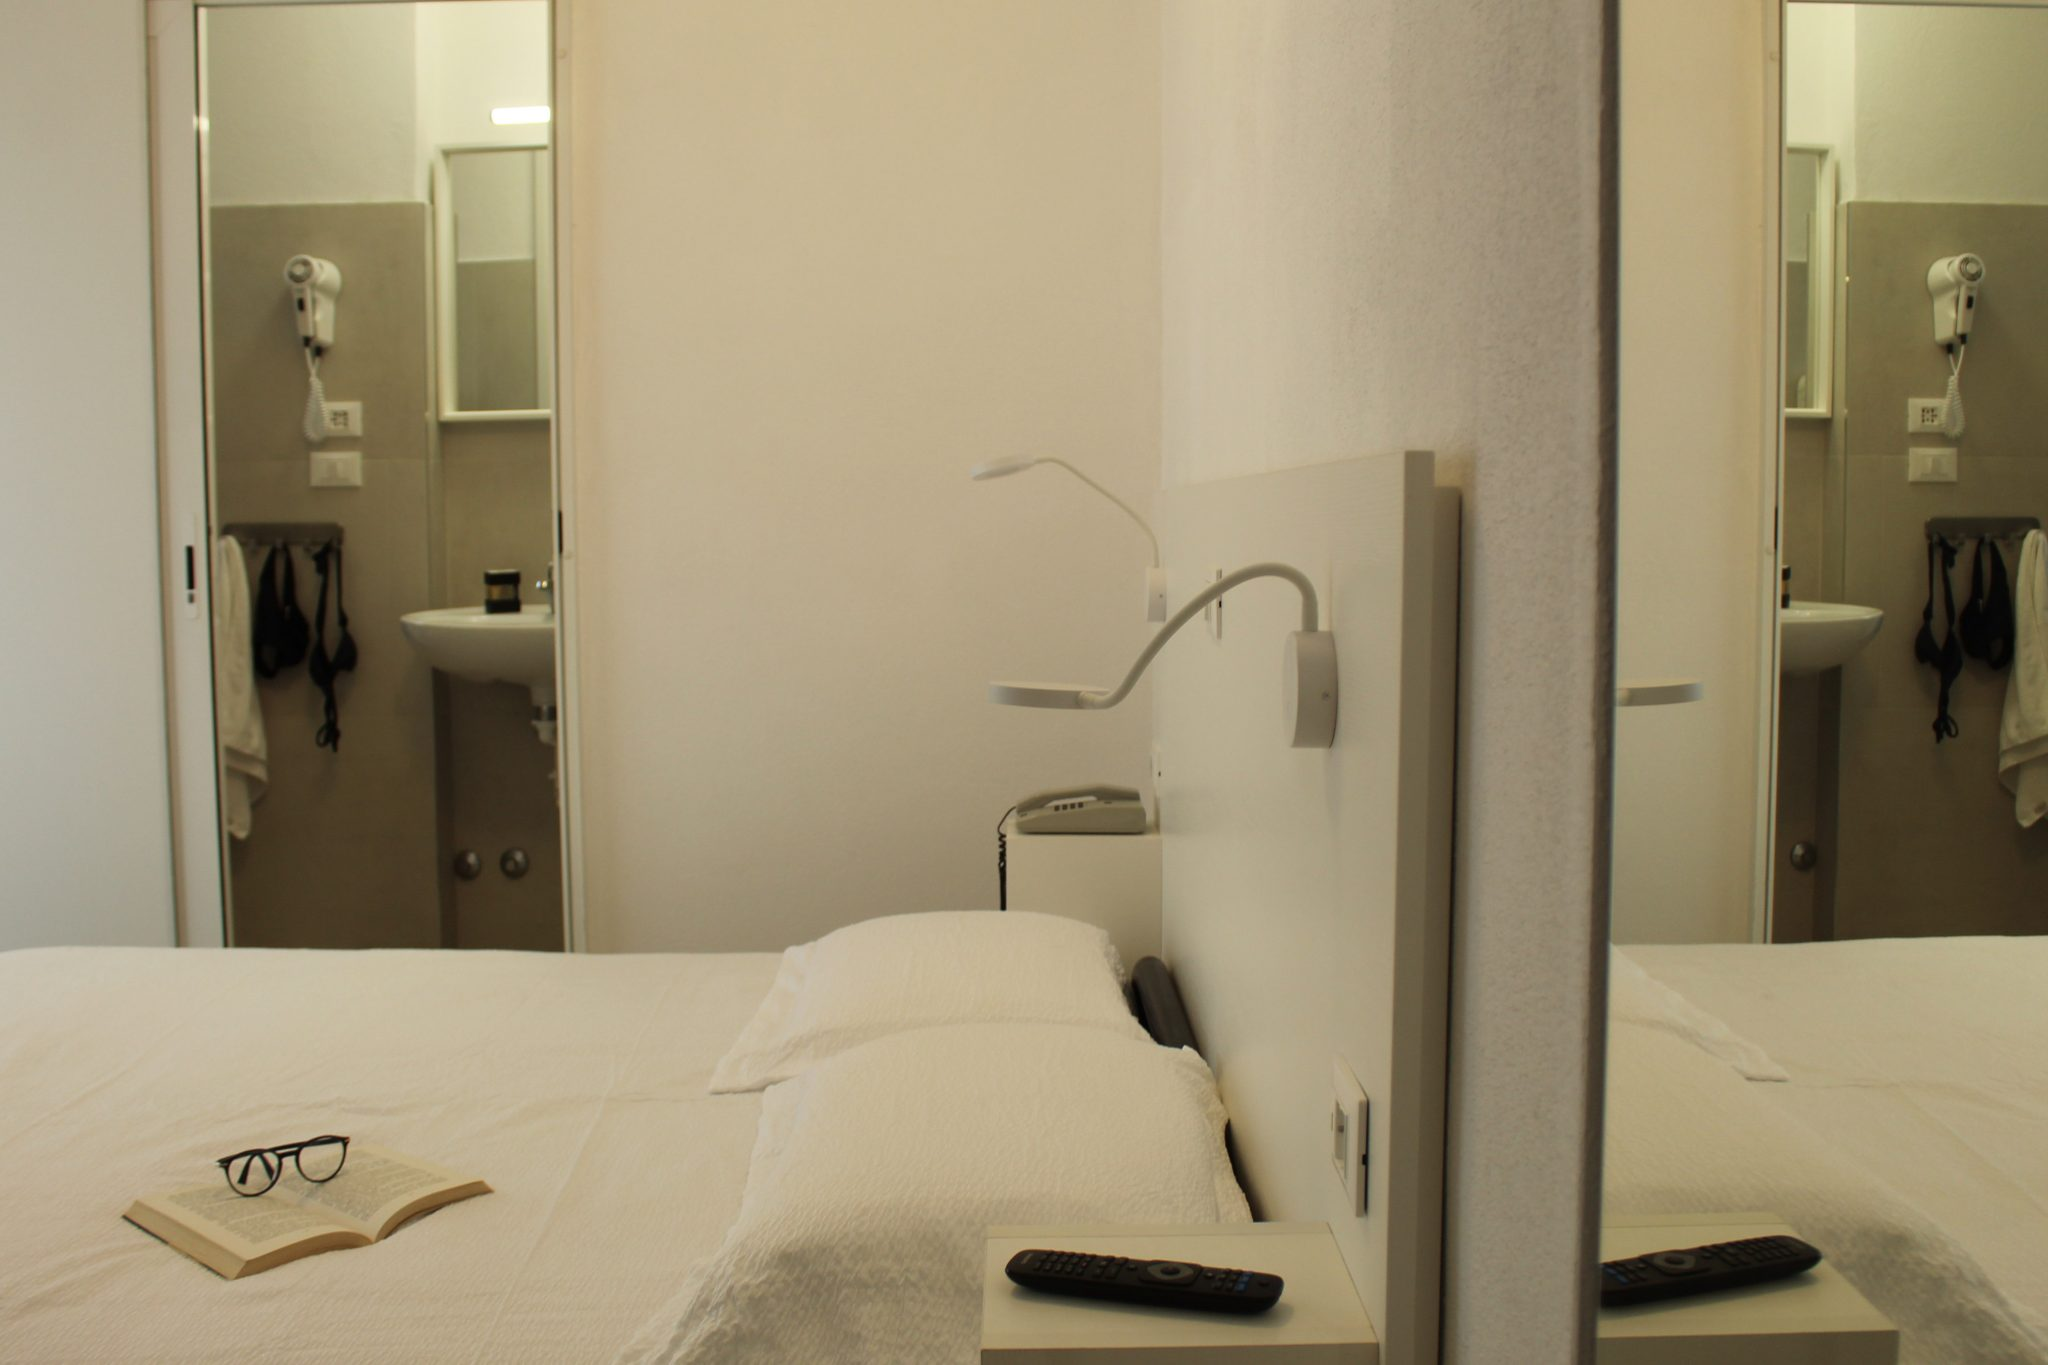 https://www.hotelvenezuela.it/wp-content/uploads/2020/04/Camera_XL_Privacy_letto_matrimoniale_bagno_in_camera.jpg